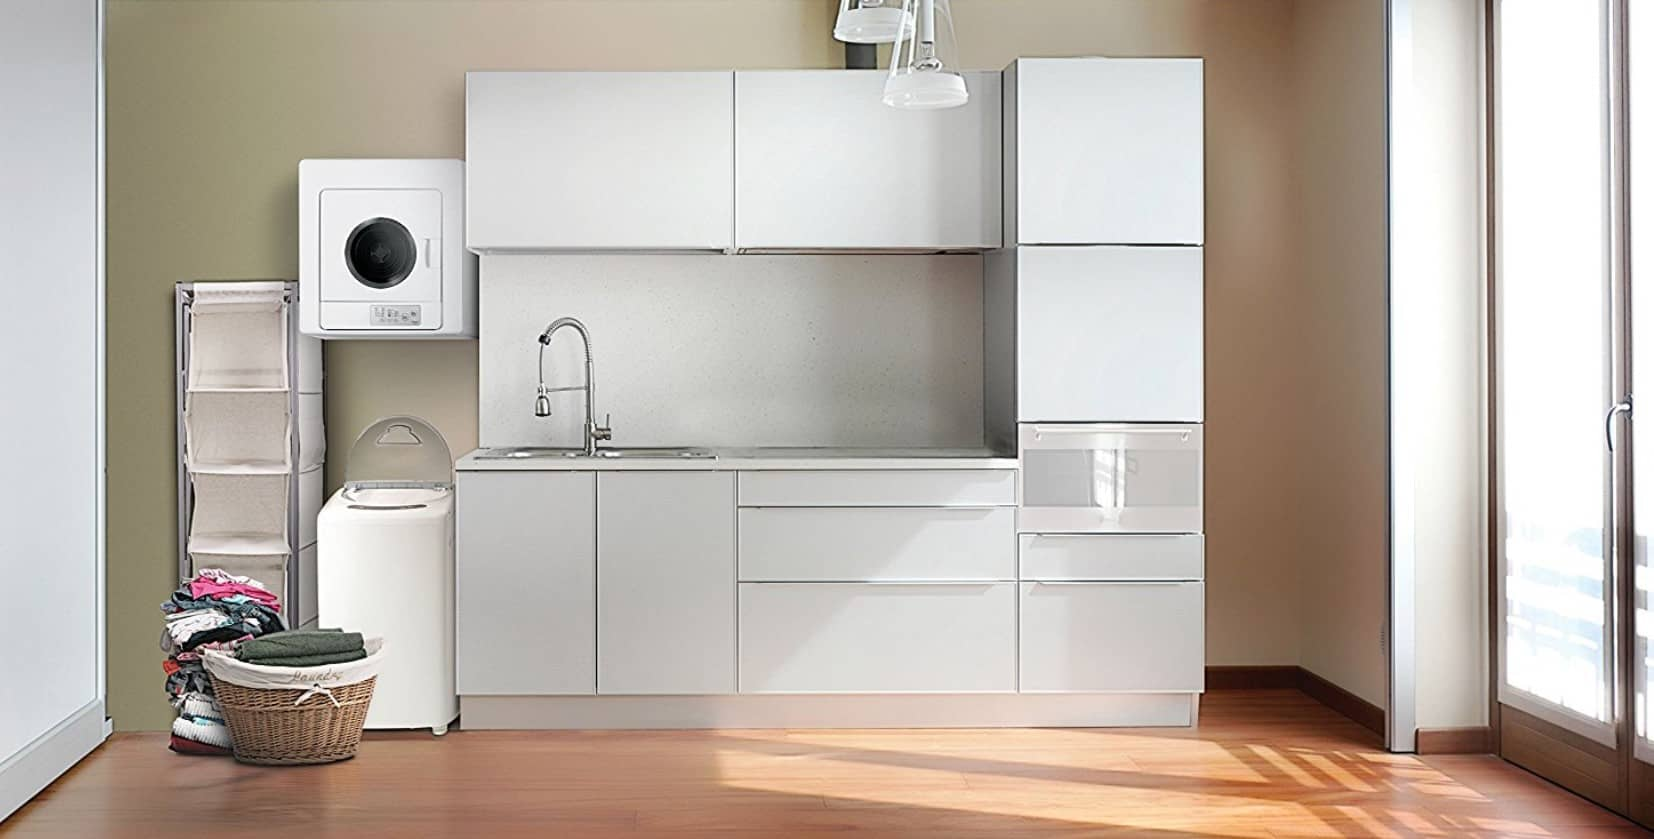 10 best mini and portable washing machines reviews in 2018. Black Bedroom Furniture Sets. Home Design Ideas